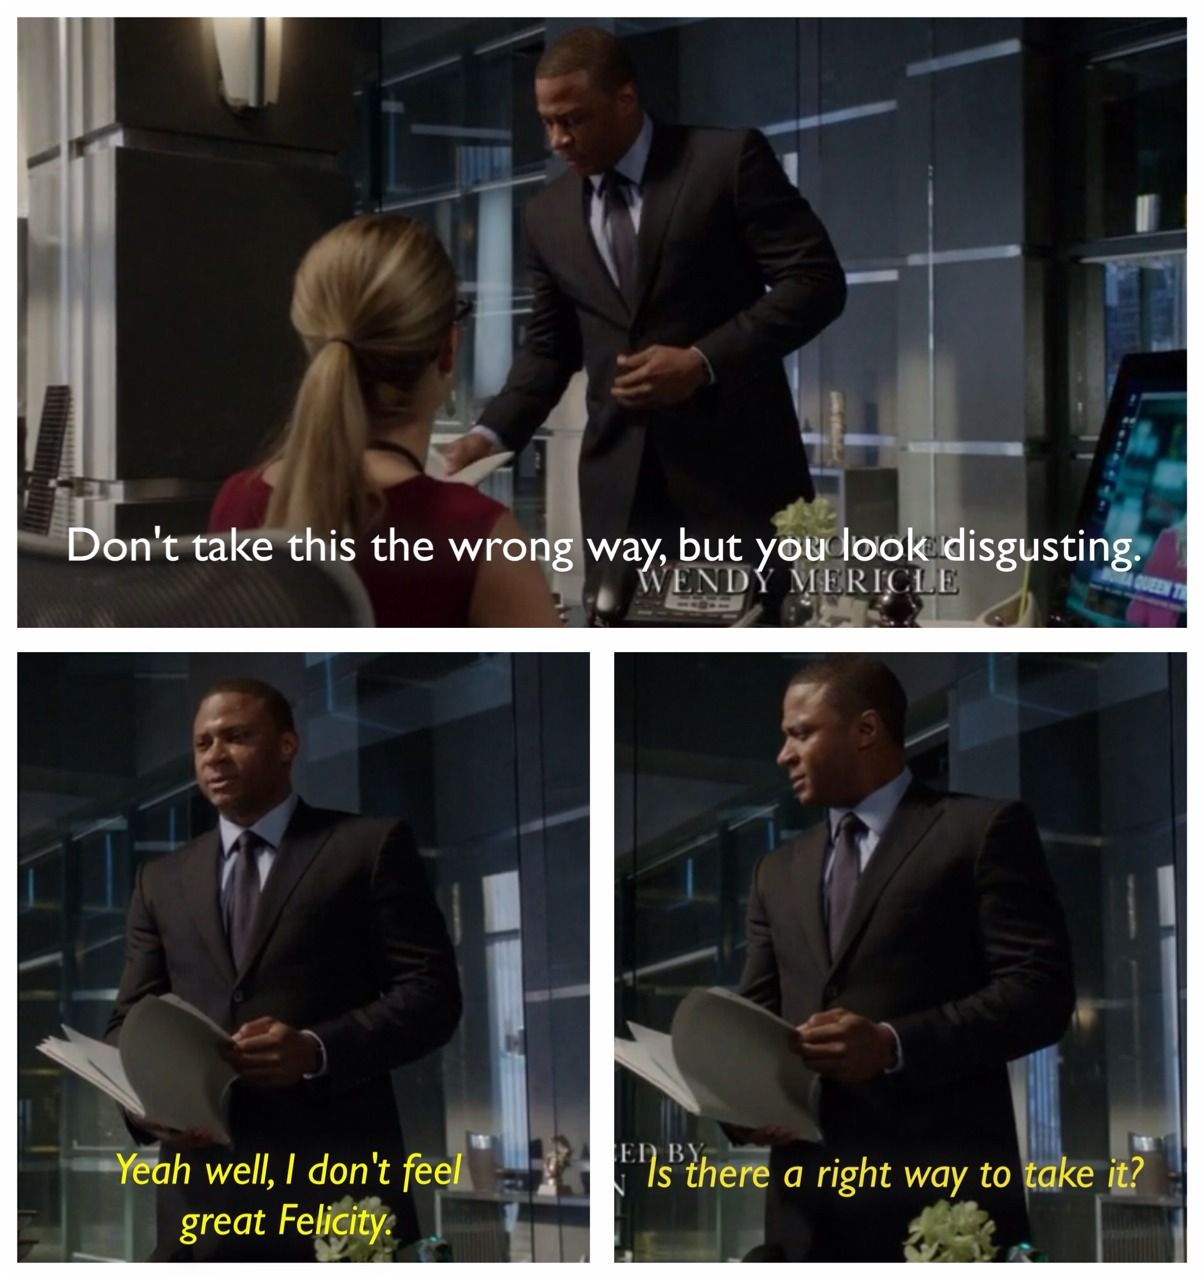 Arrow - Diggle & Felicity #Season2 ♥     Because of the sneak peek of tomorrow's episode, I thought of other Diglicity scenes. This was also one of my favourite. His face and comment, priceless.  Other suggestions?